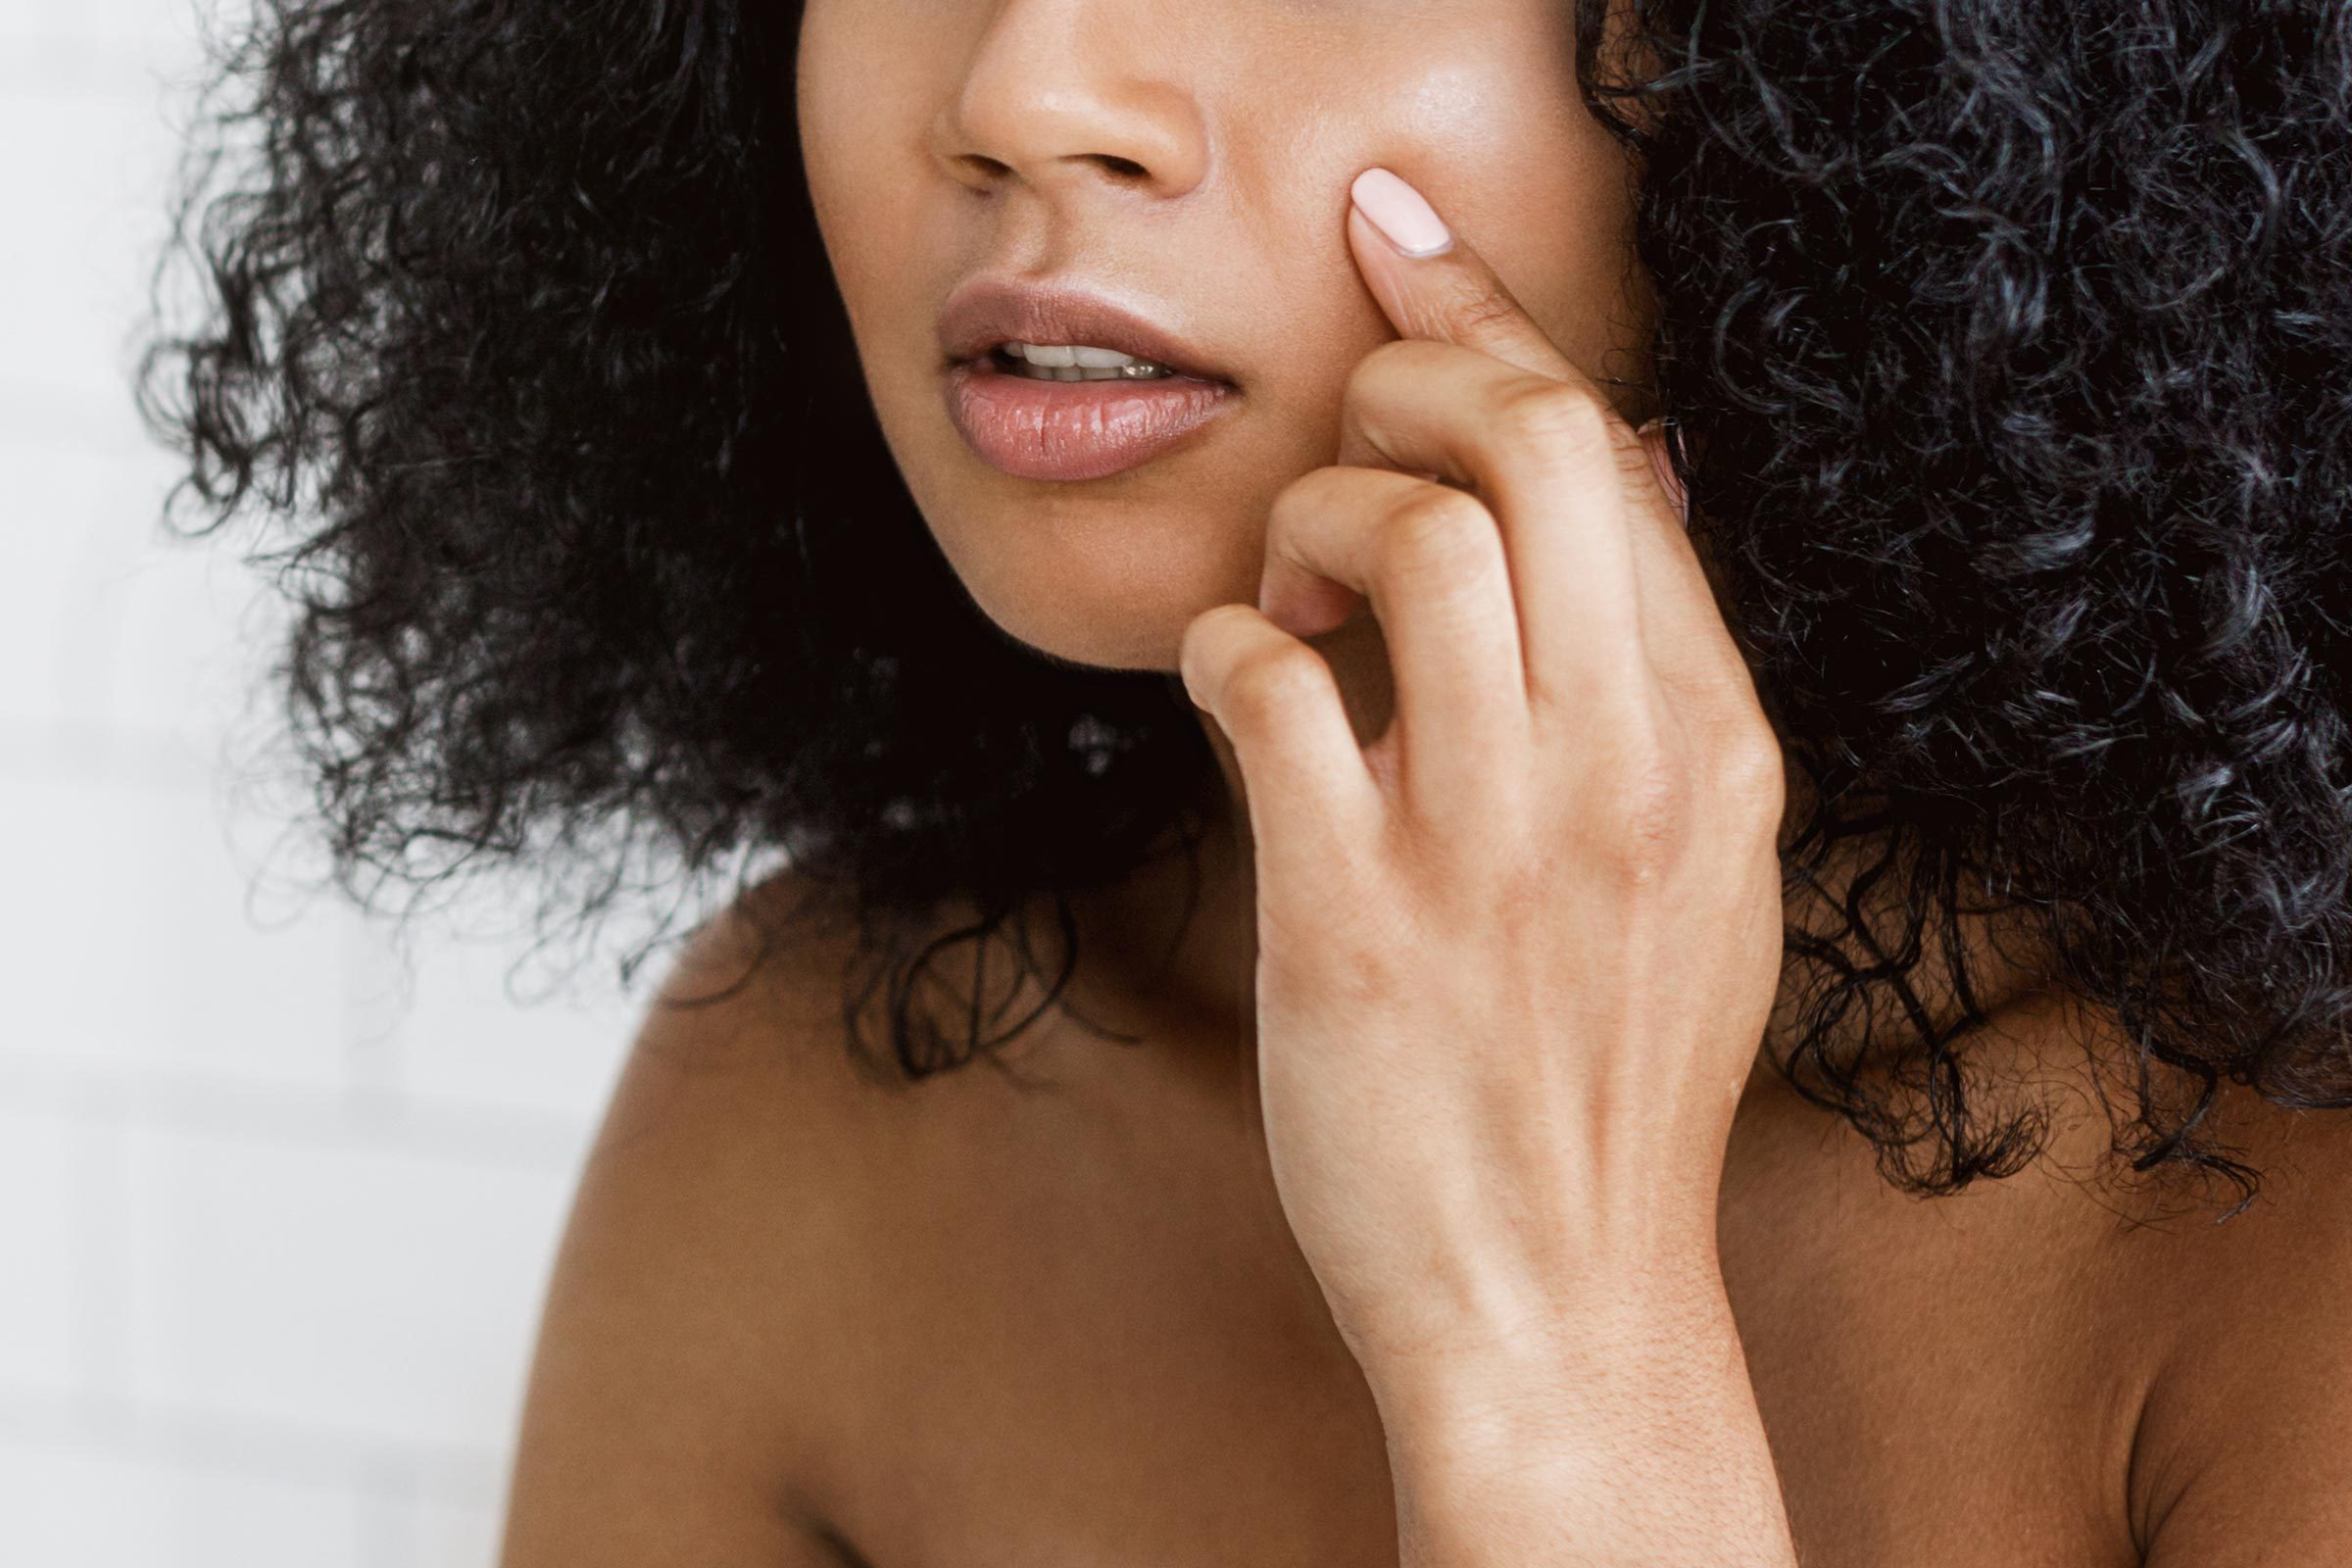 How to Get Rid of Whiteheads: Remedies That Work | Reader's